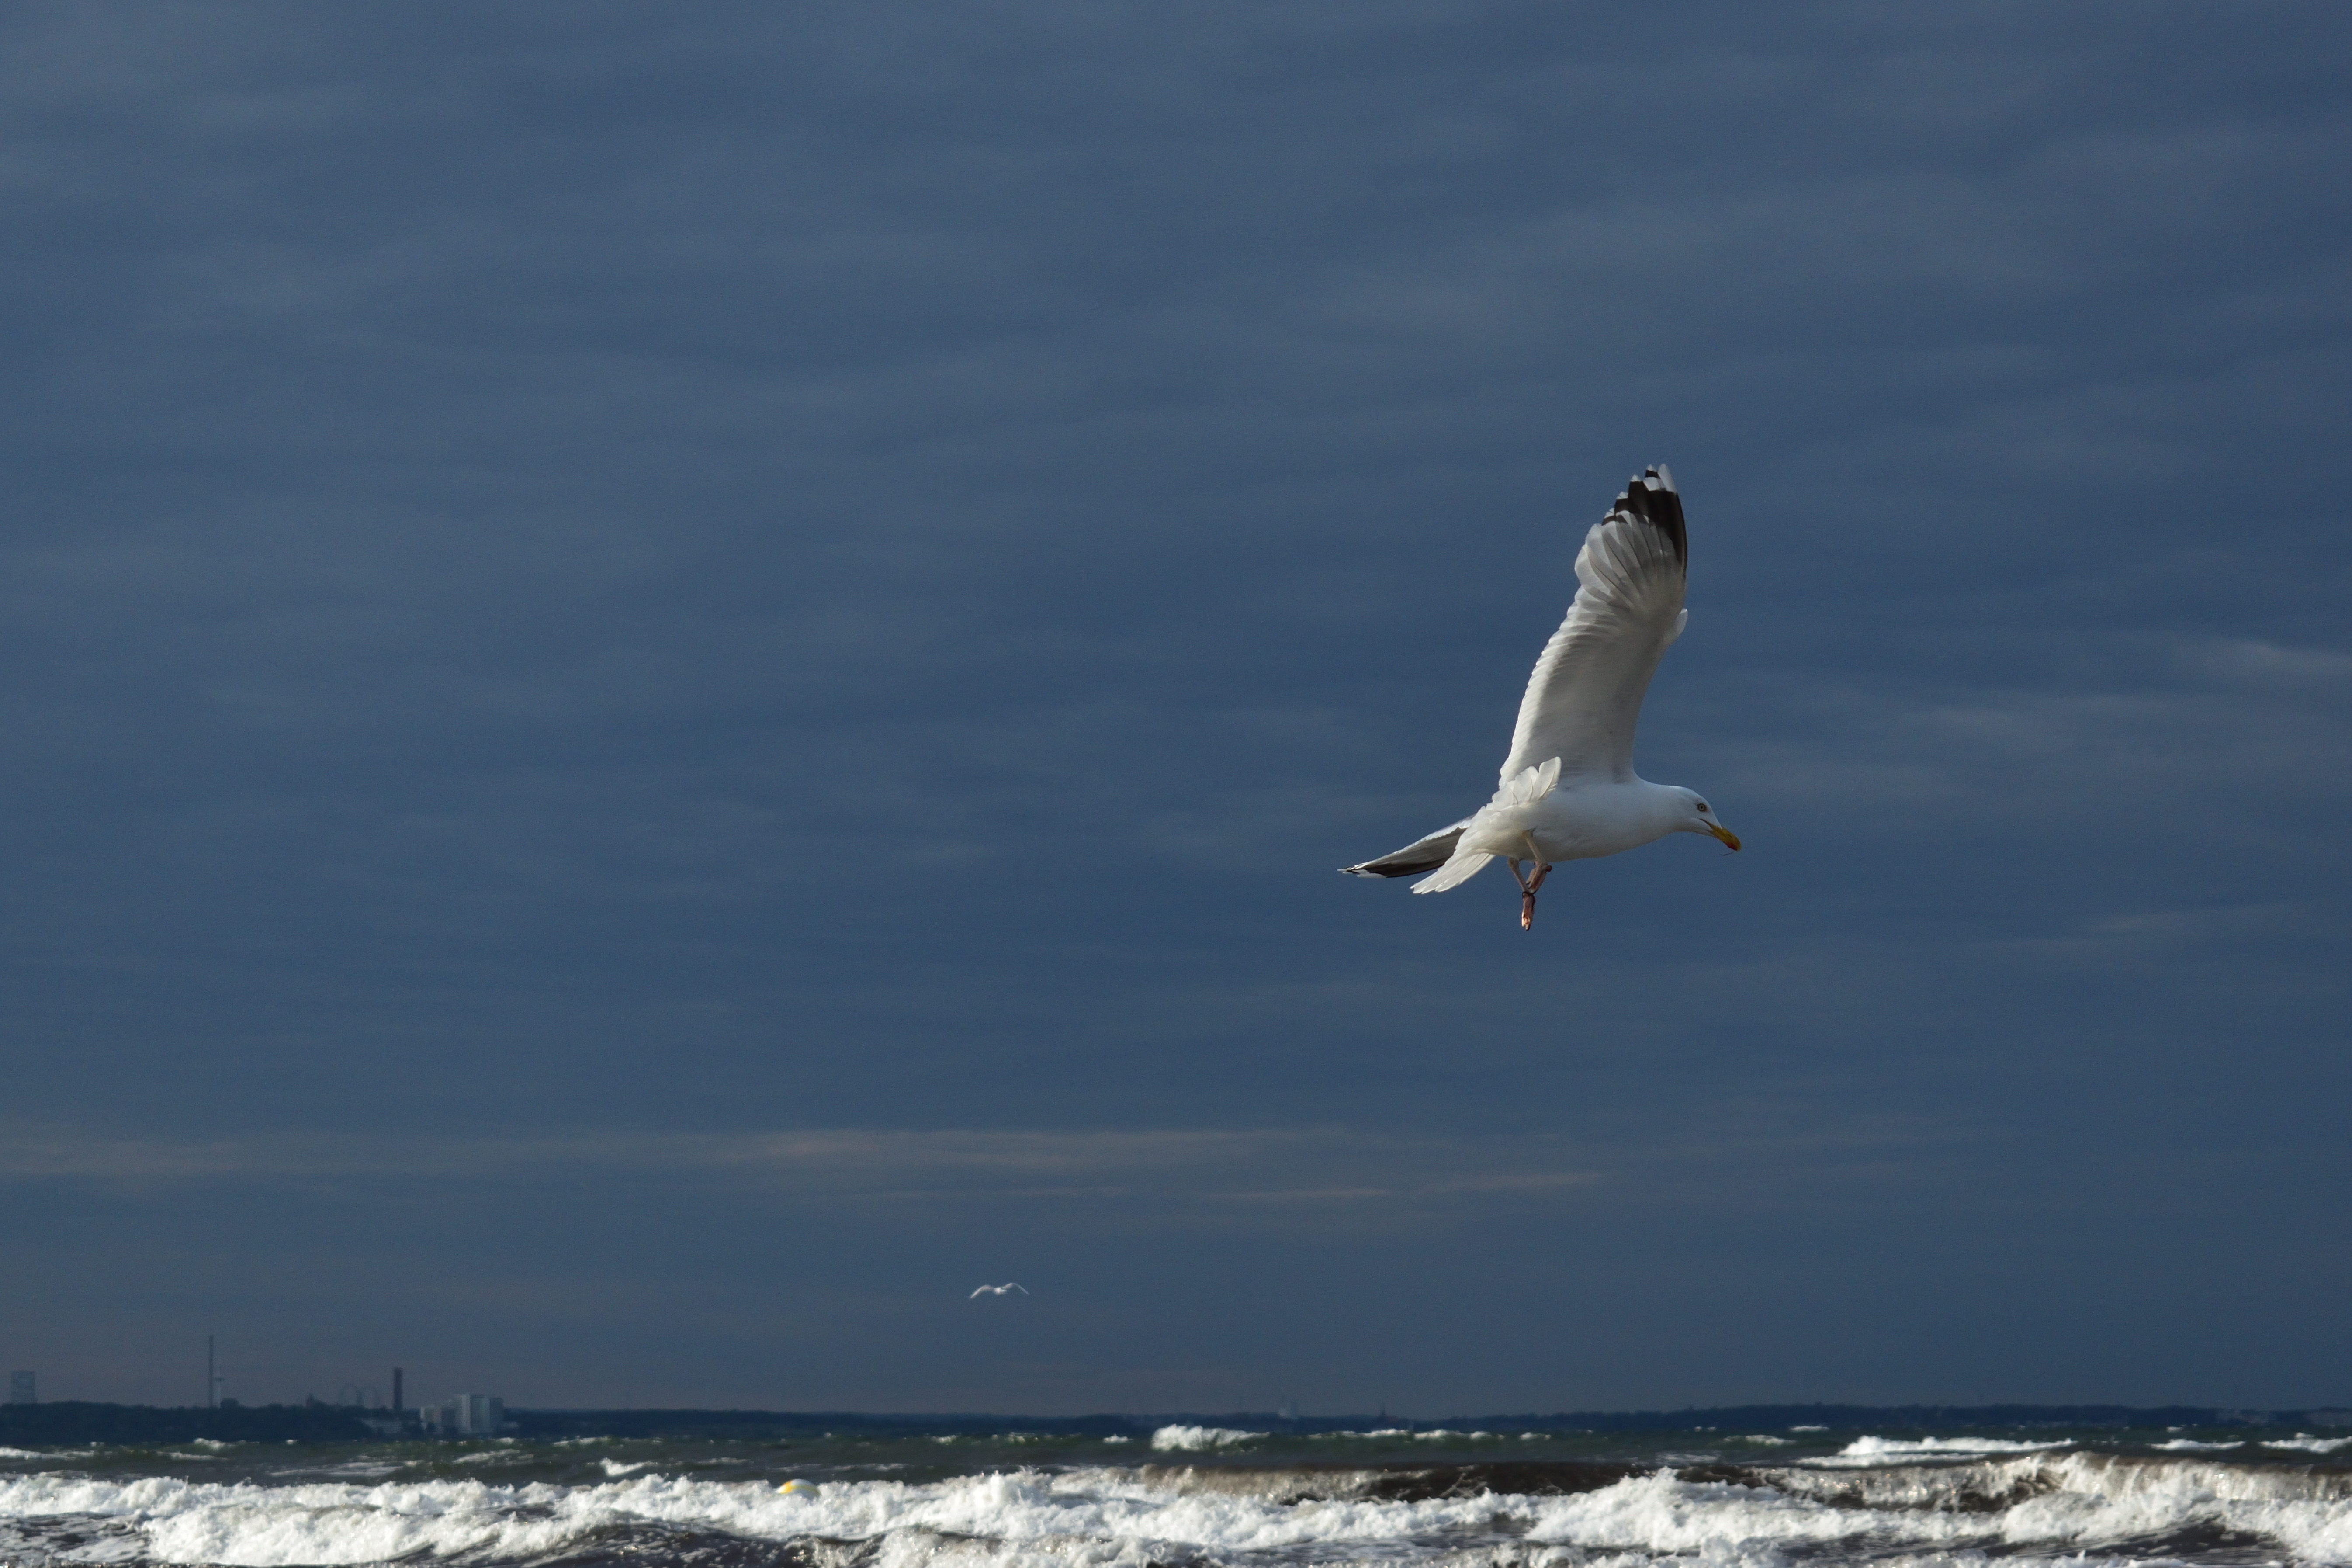 153967 download wallpaper Animals, Gull, Seagull, Bird, Wings, Flight, Waves screensavers and pictures for free